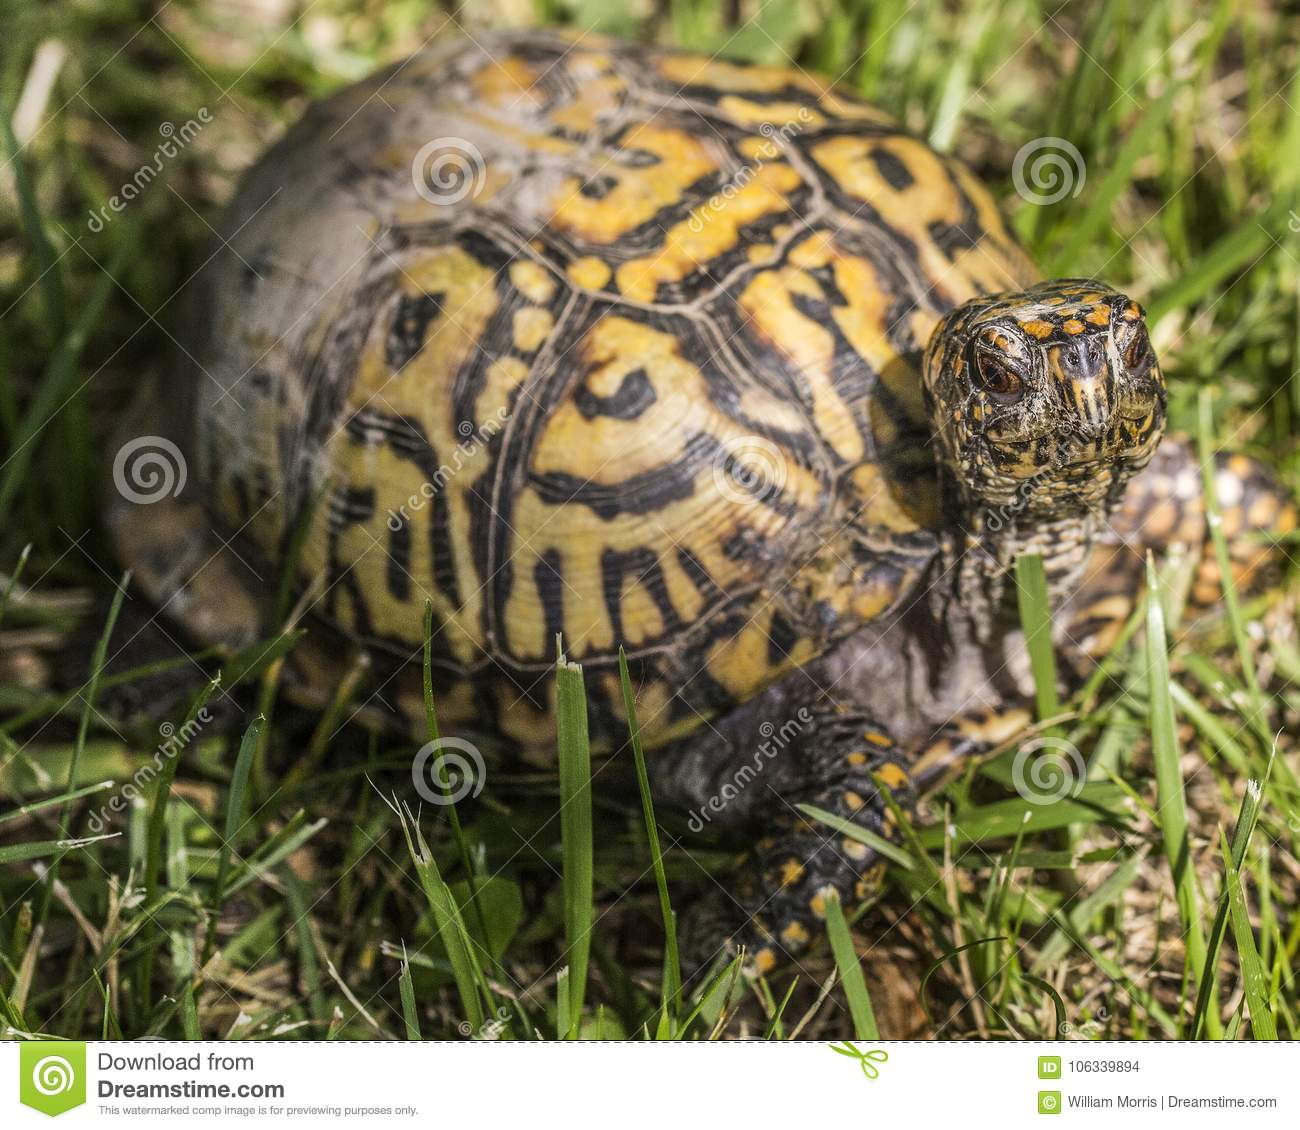 Easter box turtle looking at me.